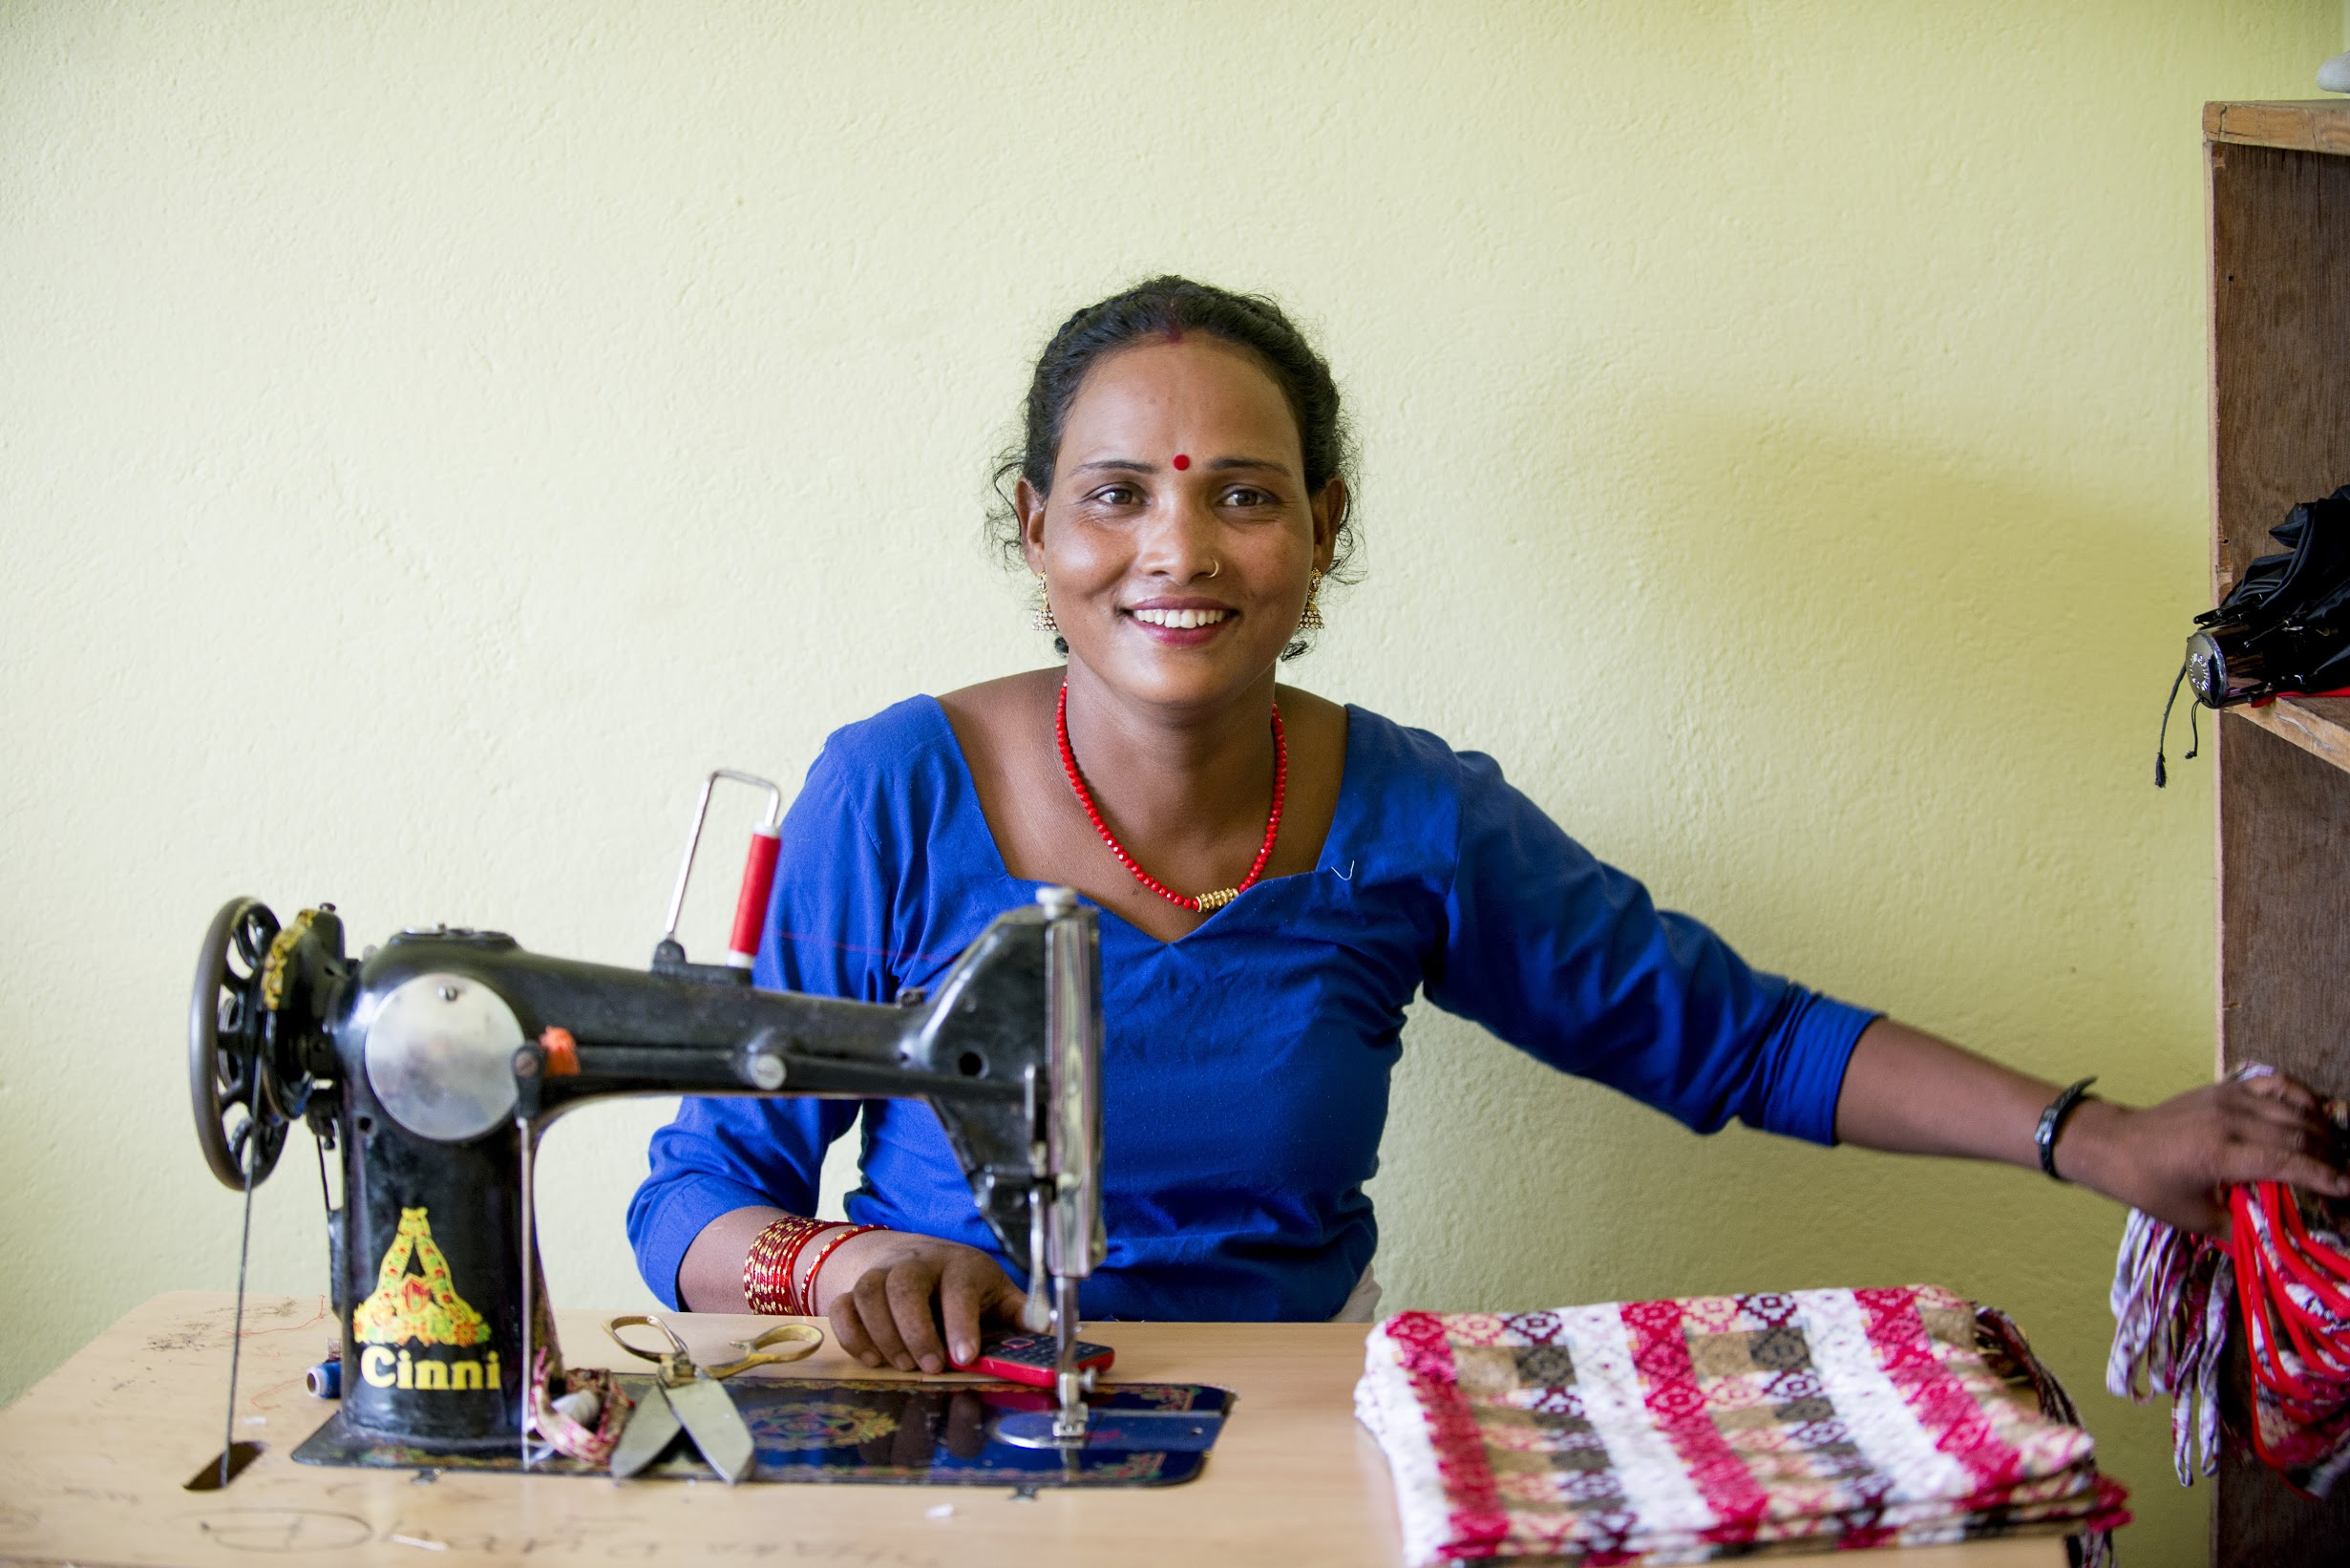 Dhana sewing at the Kopila Valley Women's Center